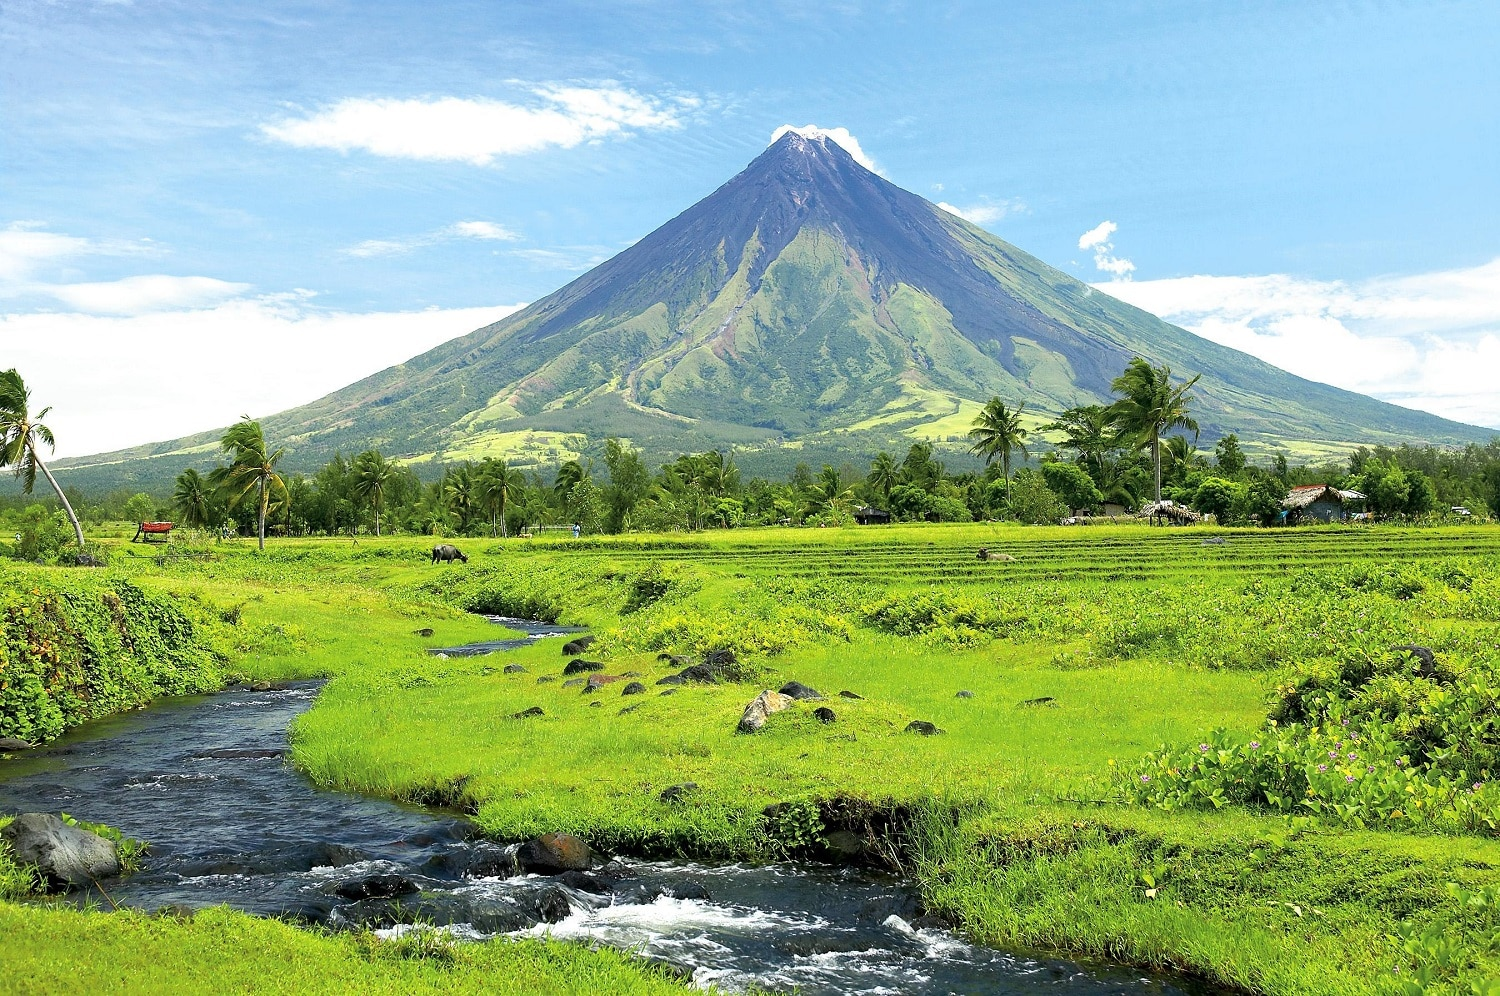 Muntele Mayon, FilipineMuntele Mayon, Filipine